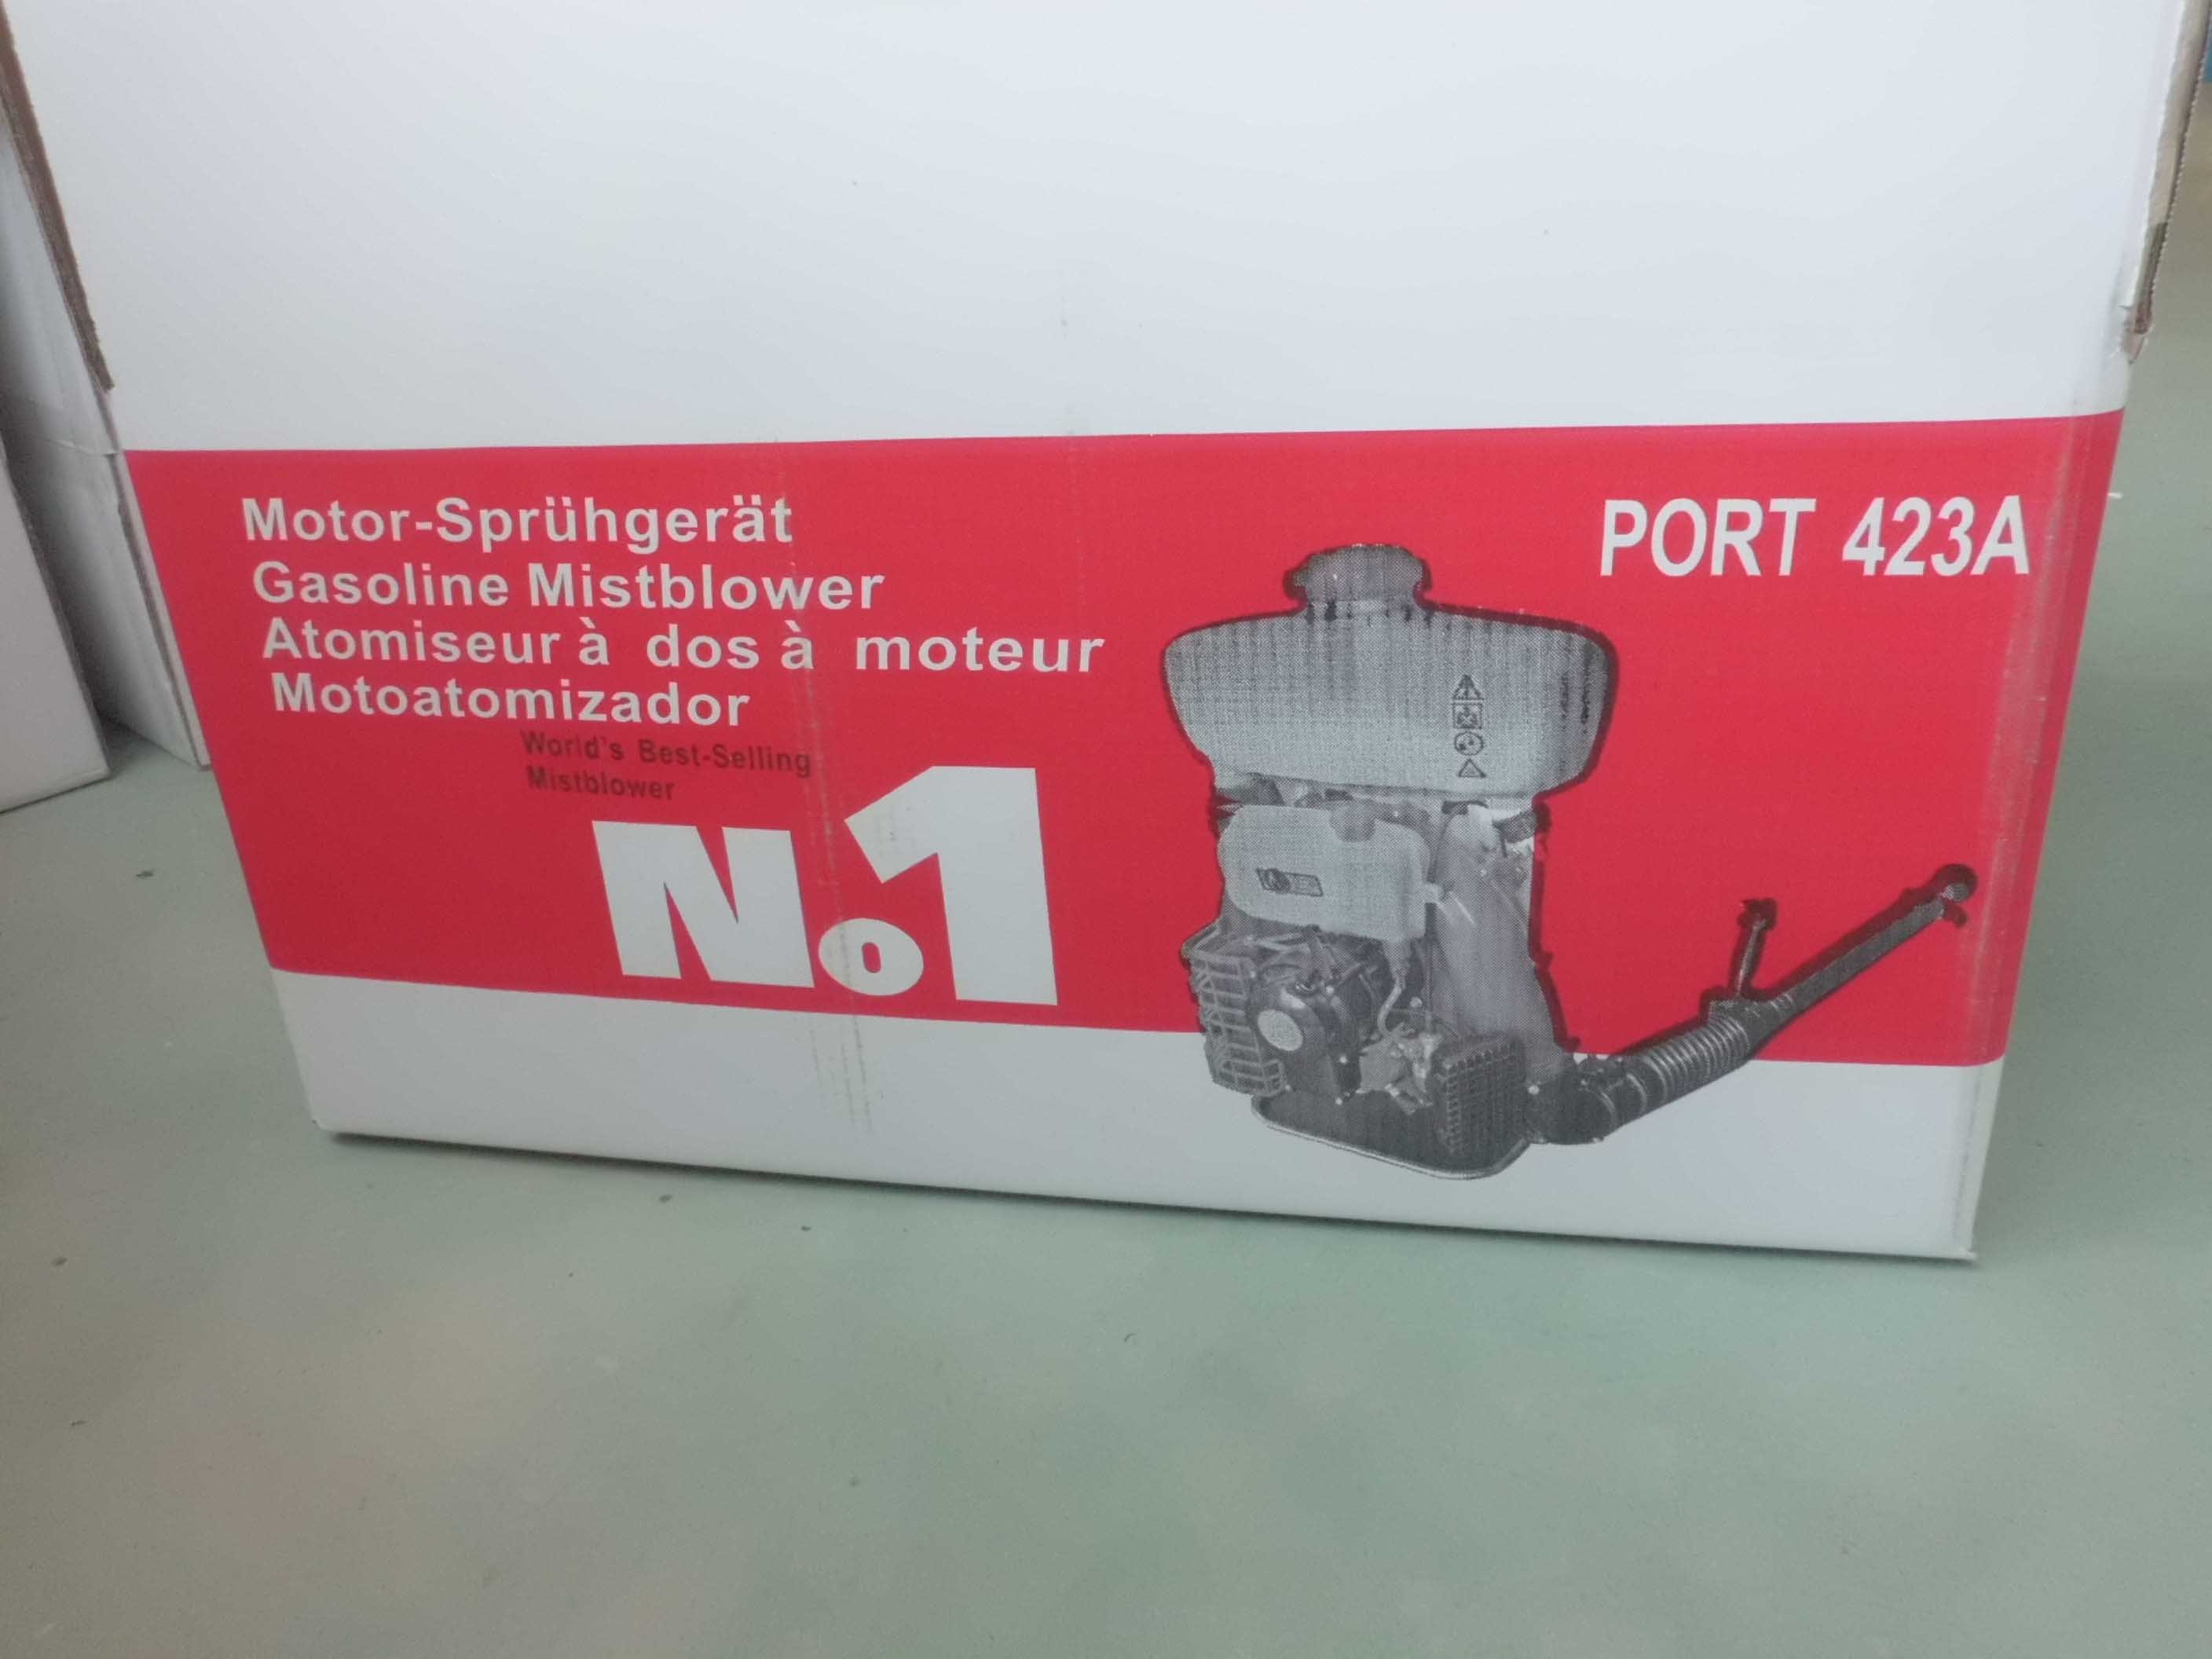 Power Sprayer -Solo 423 Motorized Mist Blower Solo Port Solo 423 Mist Blower Motor Sprayer (AM-423)